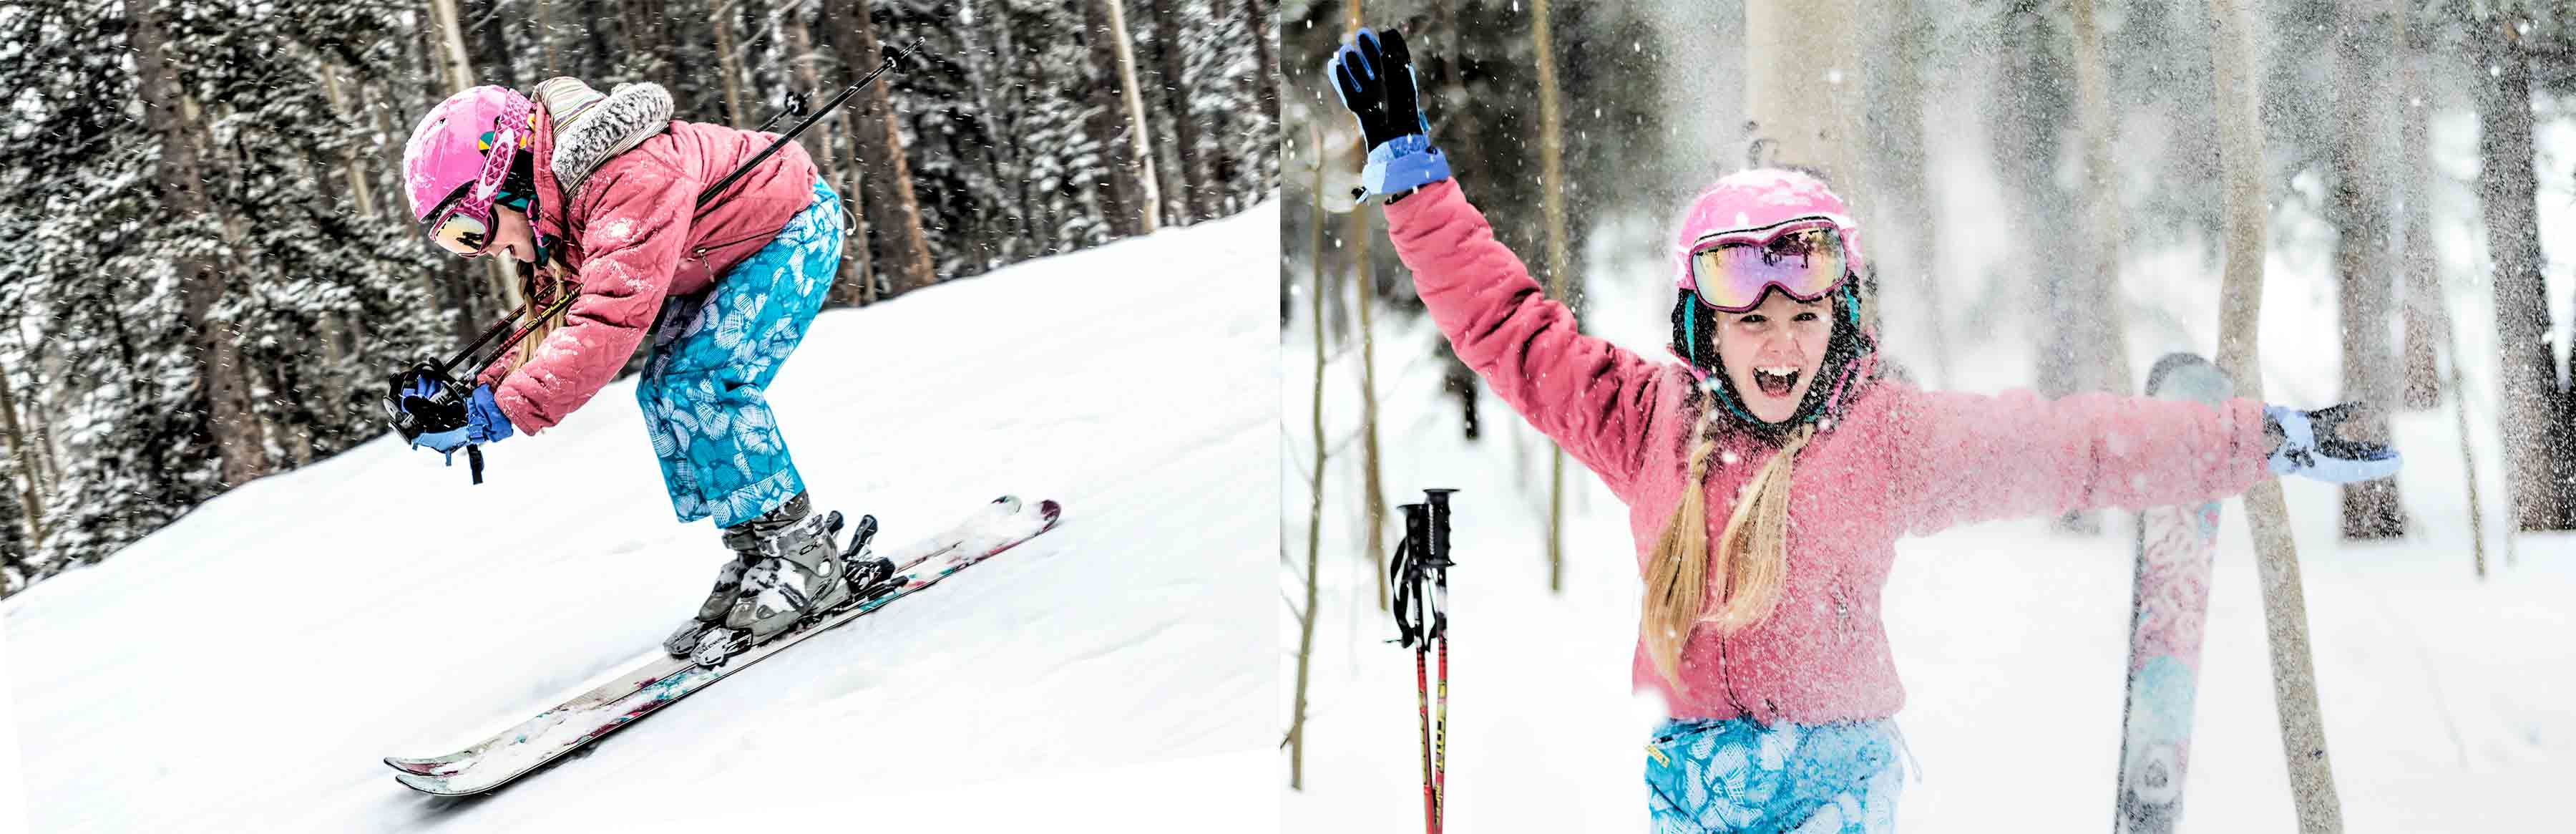 Young girl skiing. Fashion lifestyle